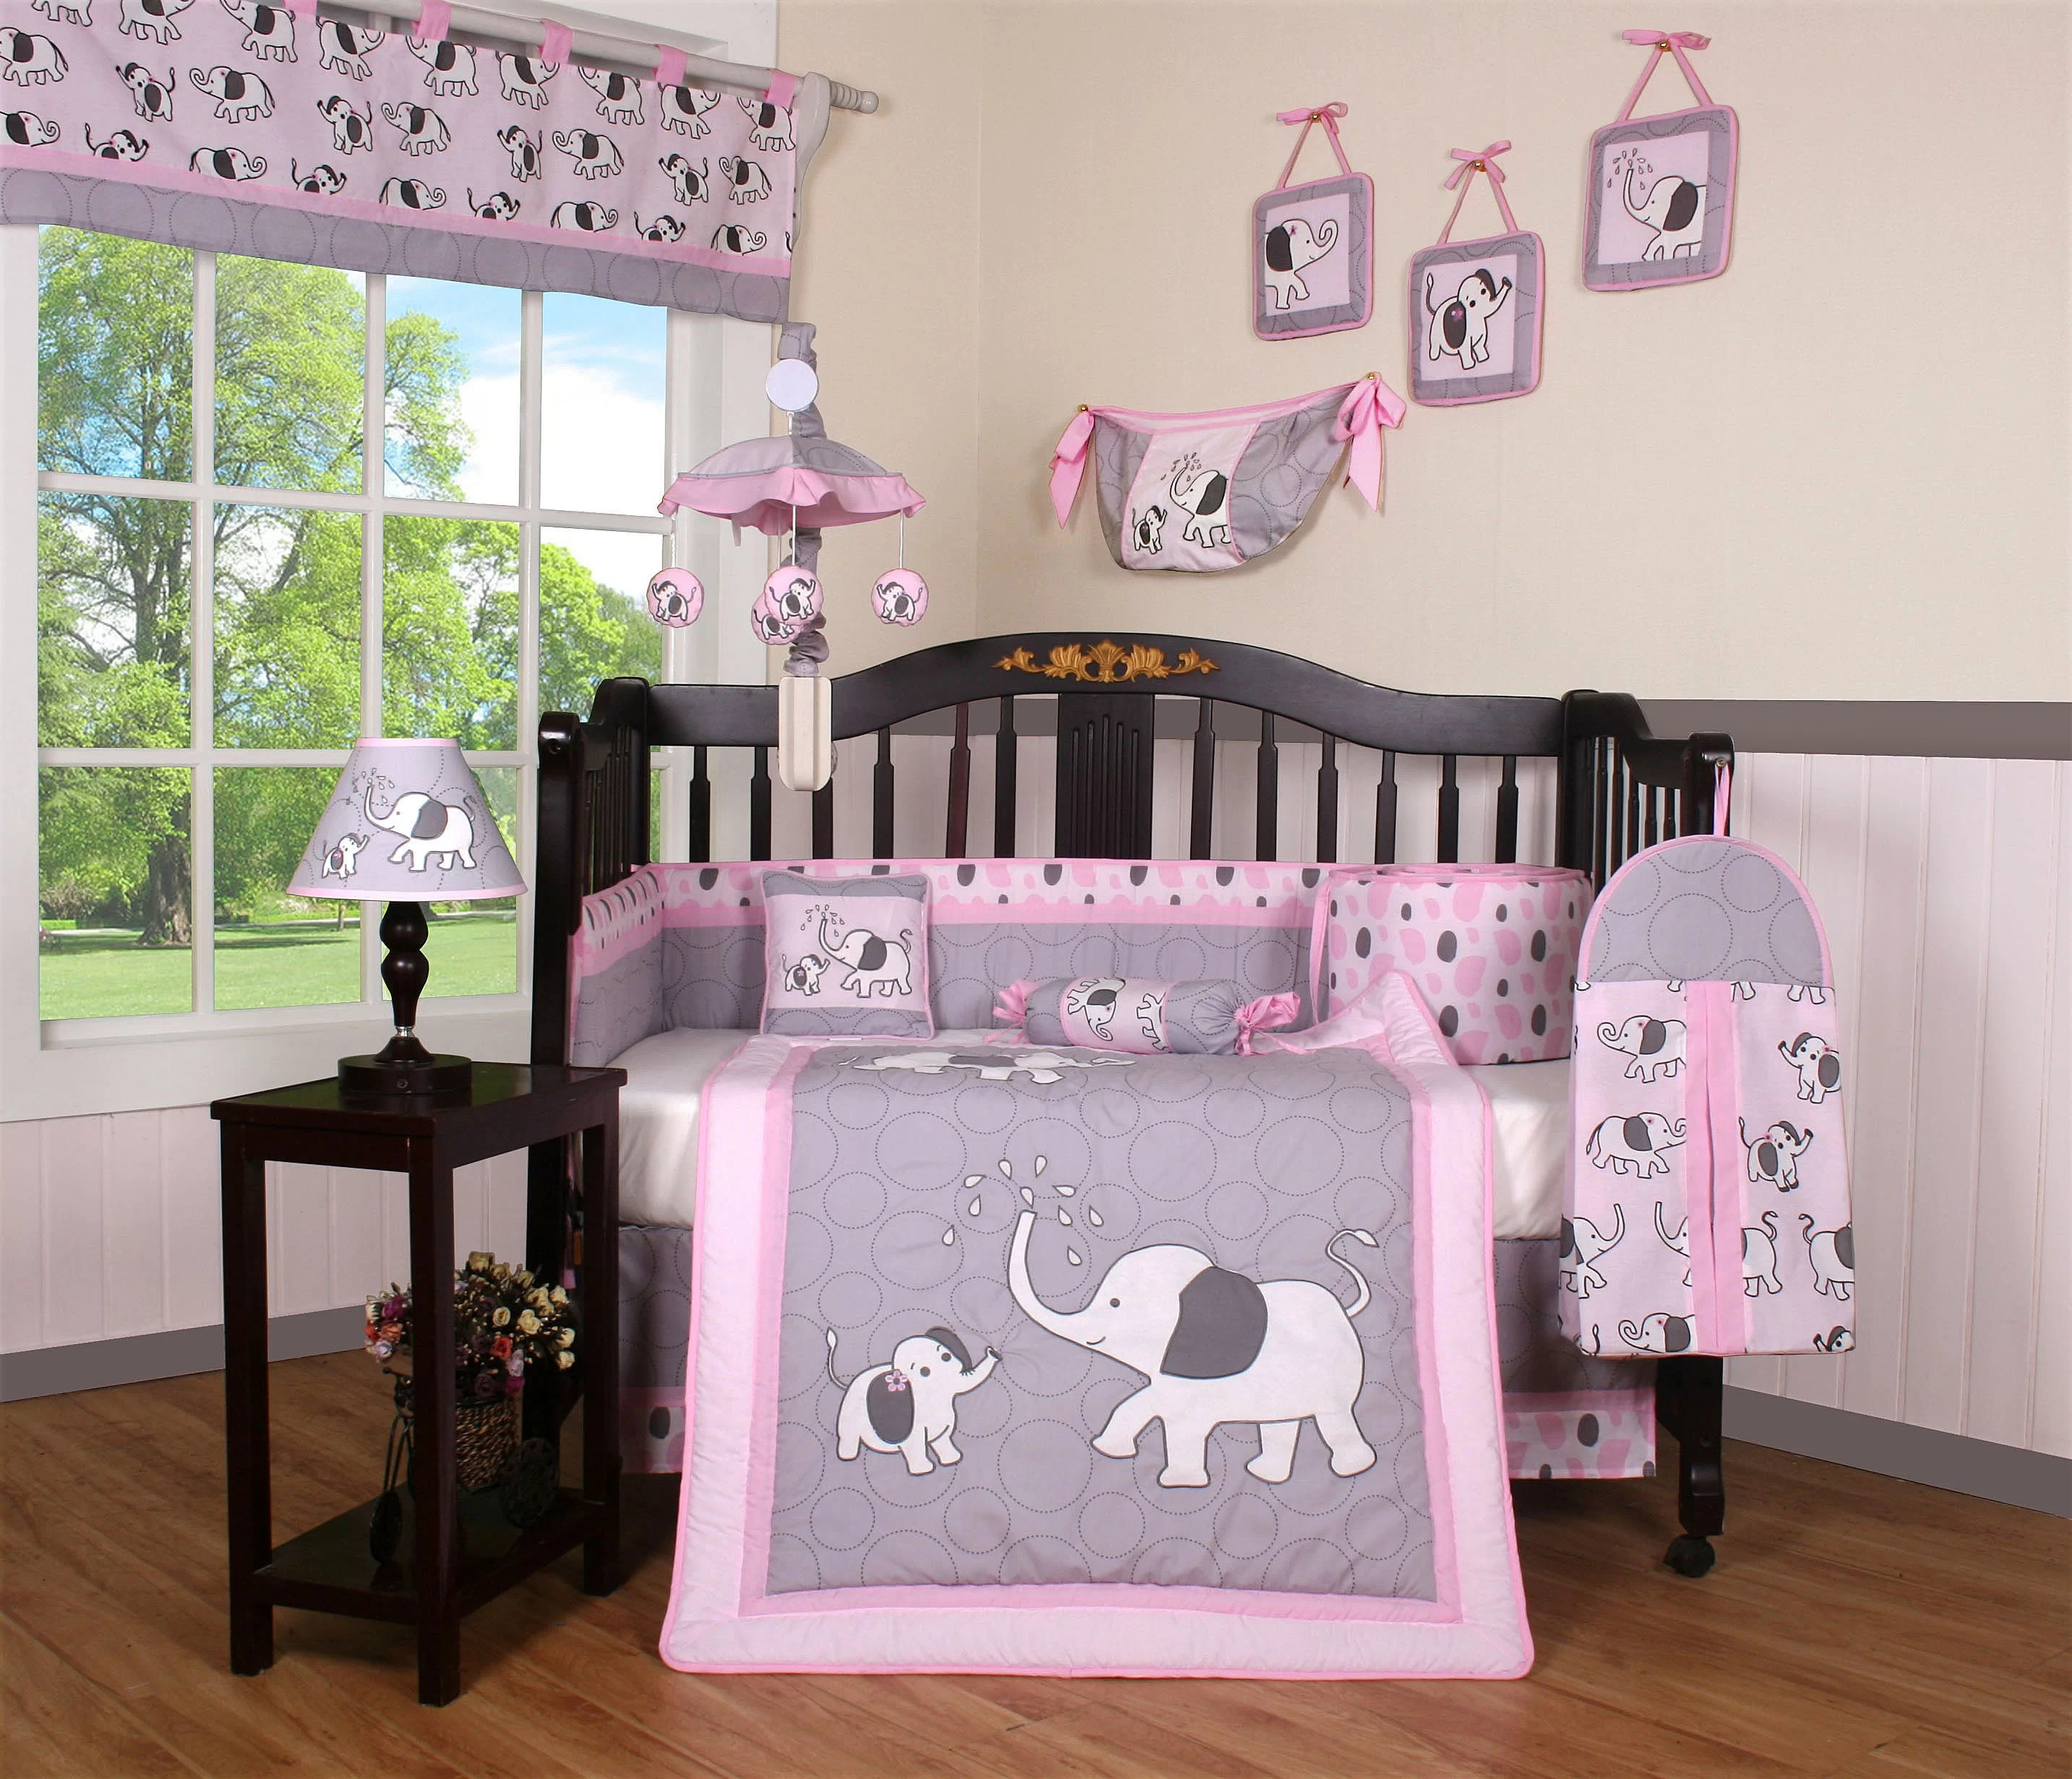 Full Crib Bedding Sets Elephant Dynasty Boutique 13 Piece Crib Bedding Set